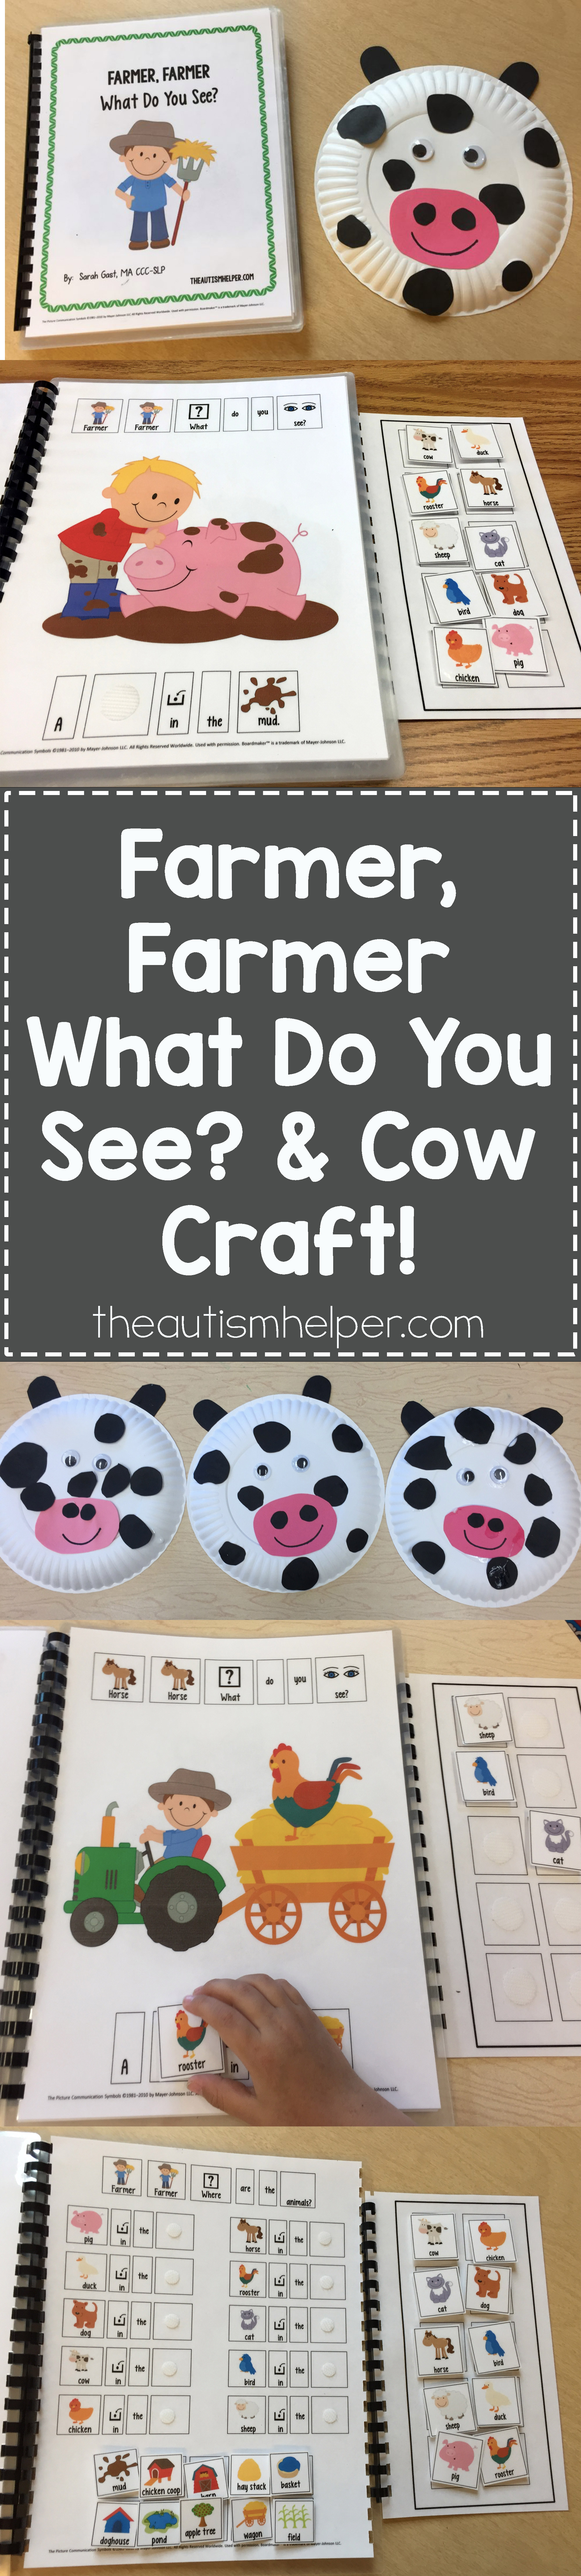 """Sarah's sticking with her farm theme this week & using the adapted book """"Farmer, Farmer What Do You See?"""" plus making a Cow Craft out of paper plates. Another great book + activity combo!! From theautismhelper.com #theautismhelper"""